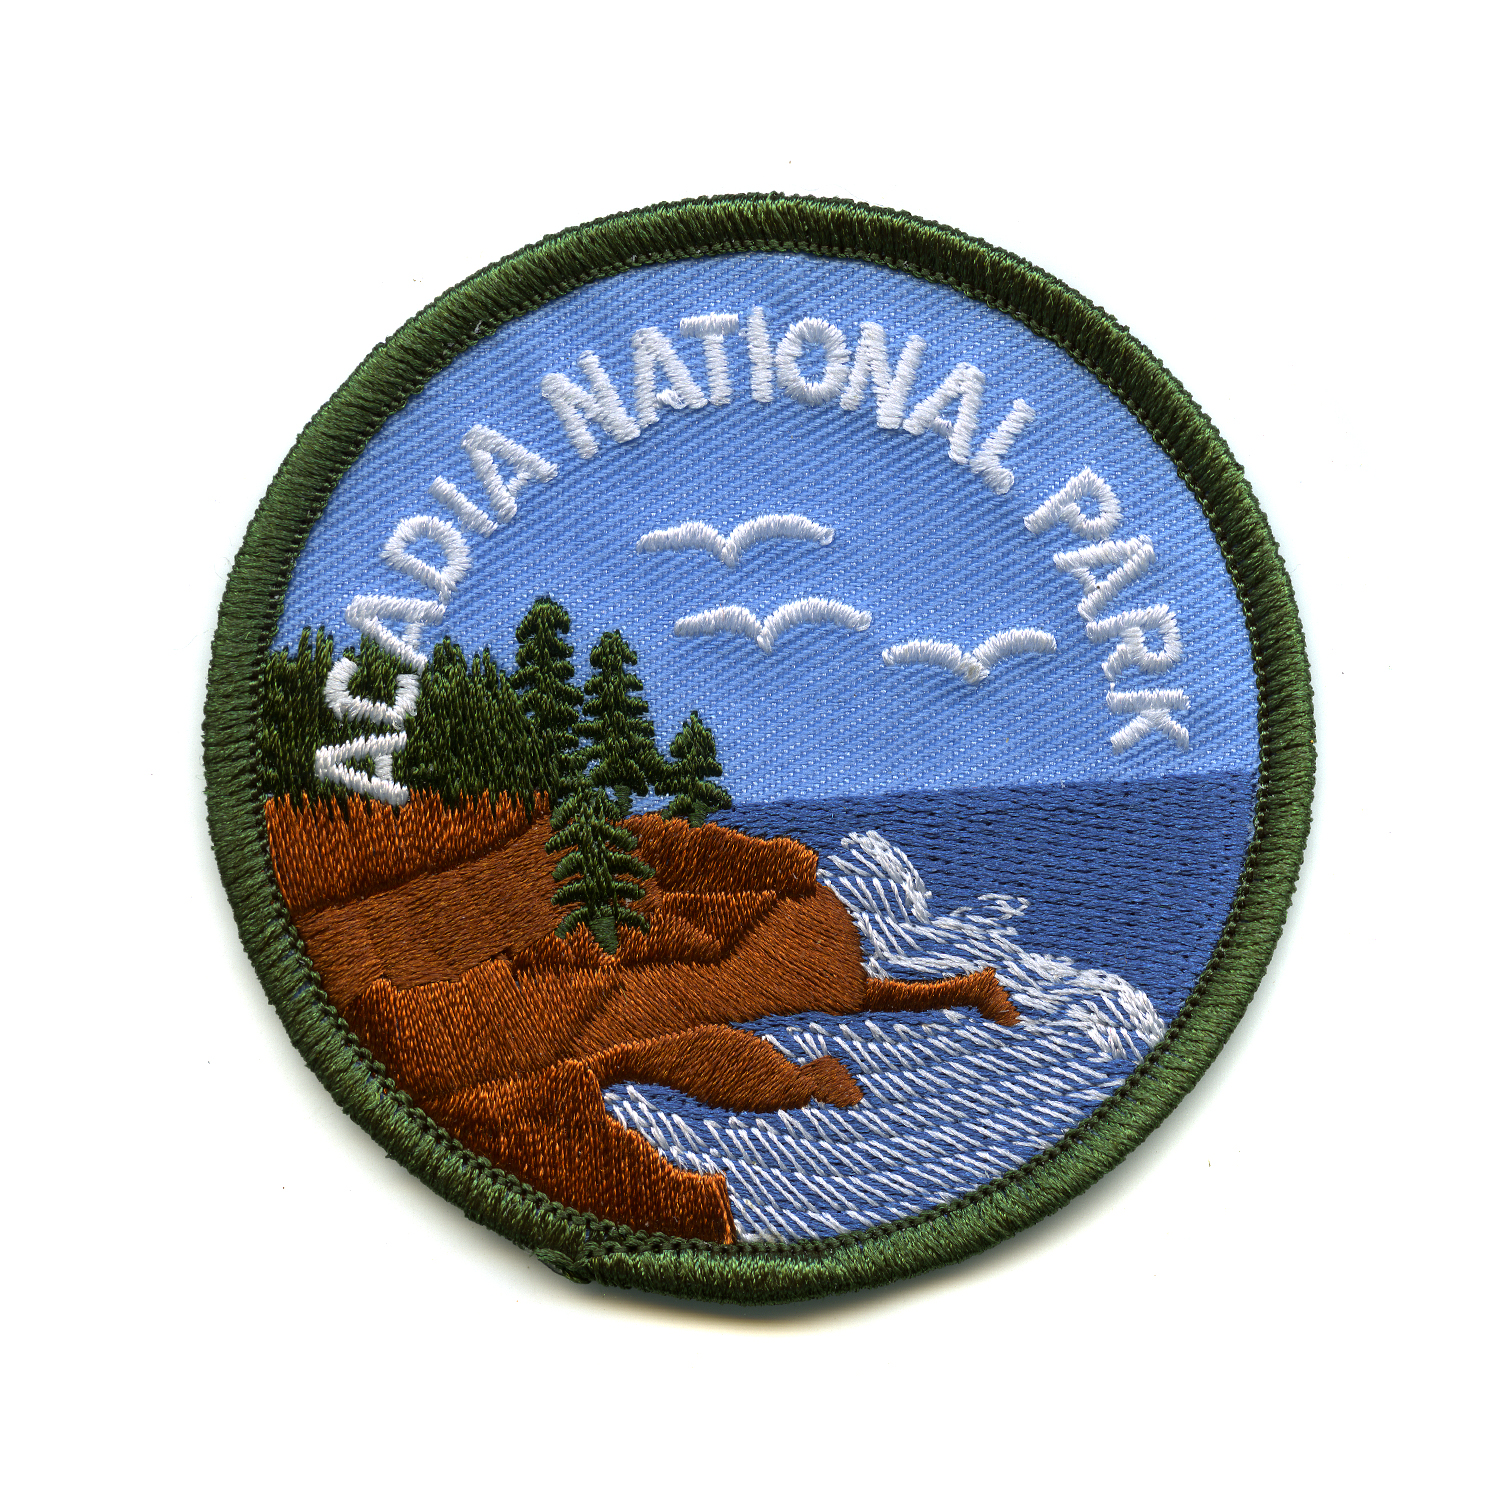 nps_patch_project_acadia_national_park_patch_1.jpg